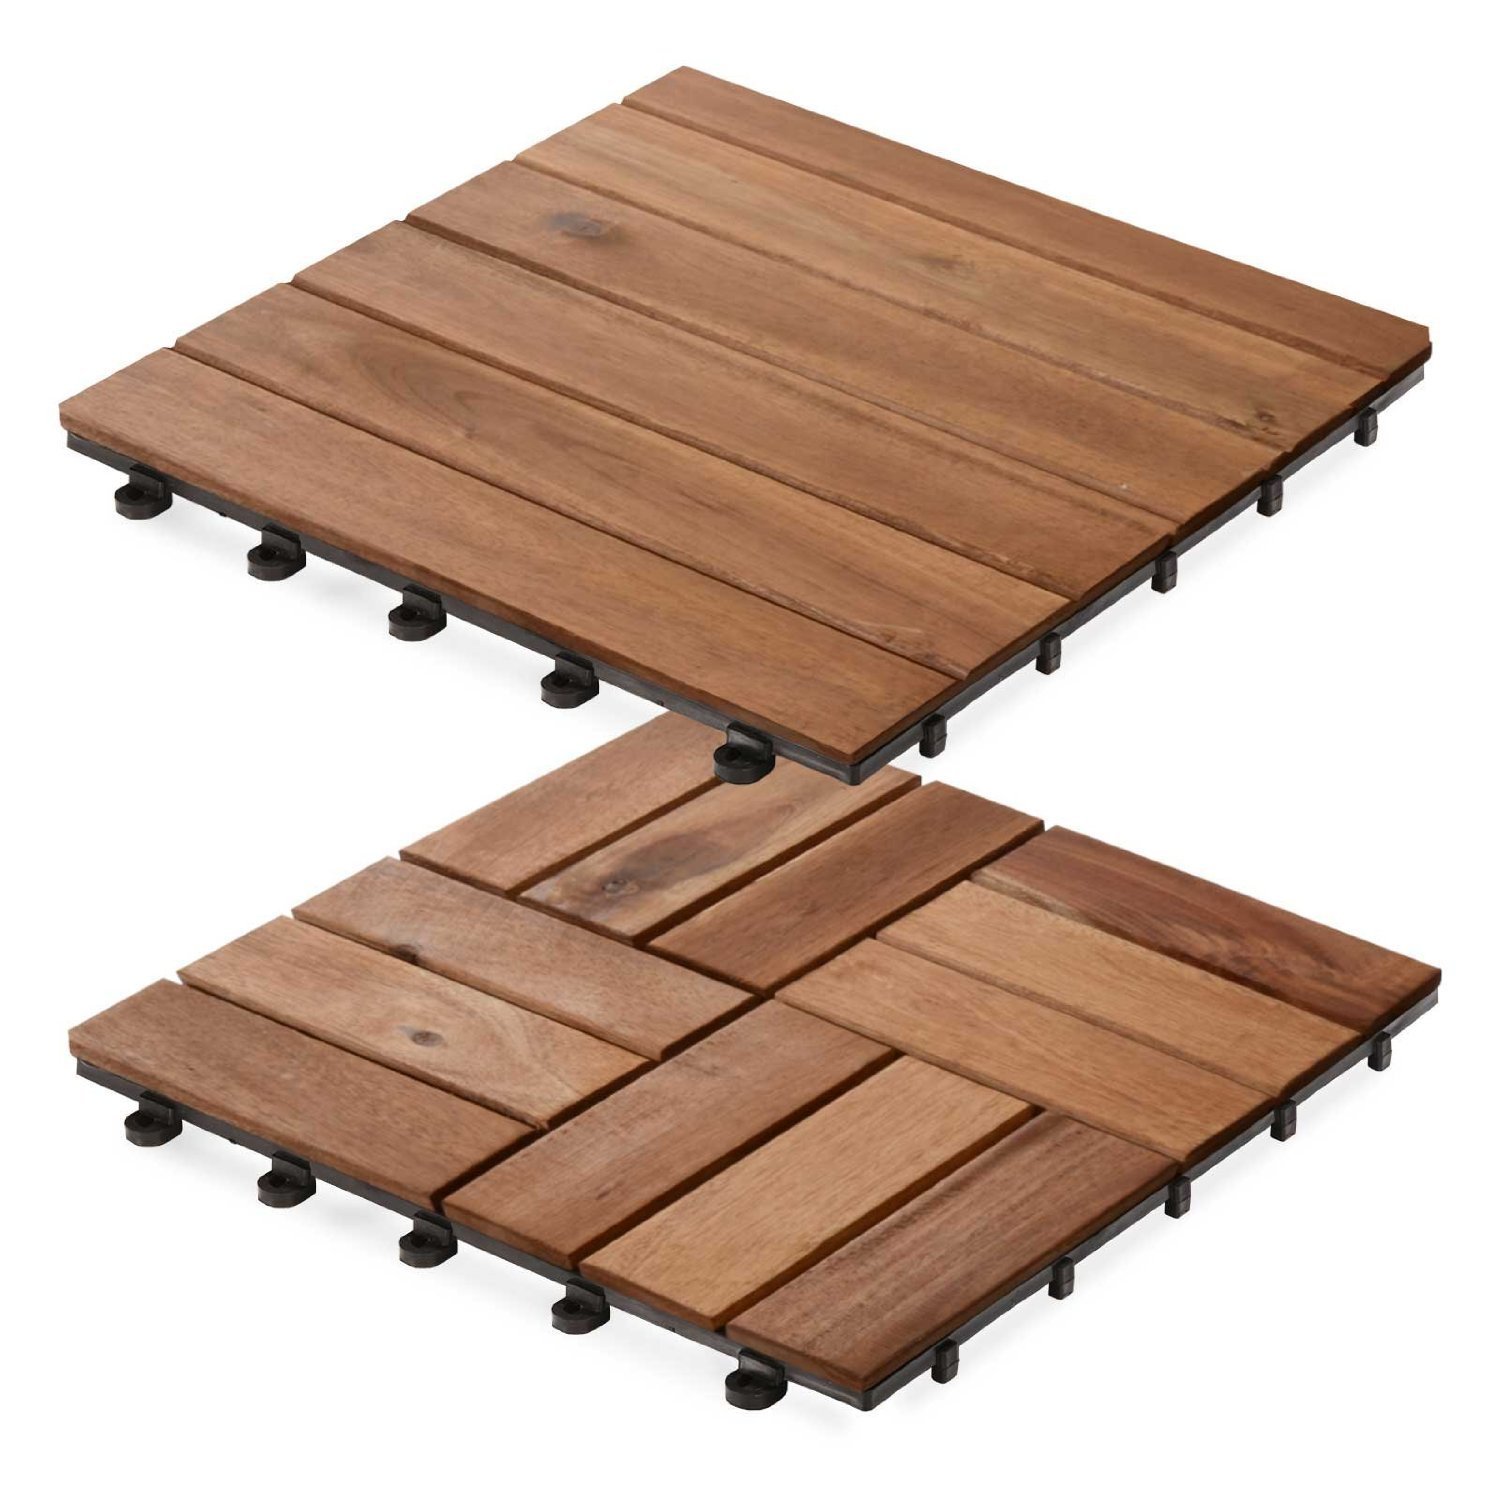 Deck Tiles Pros And Cons